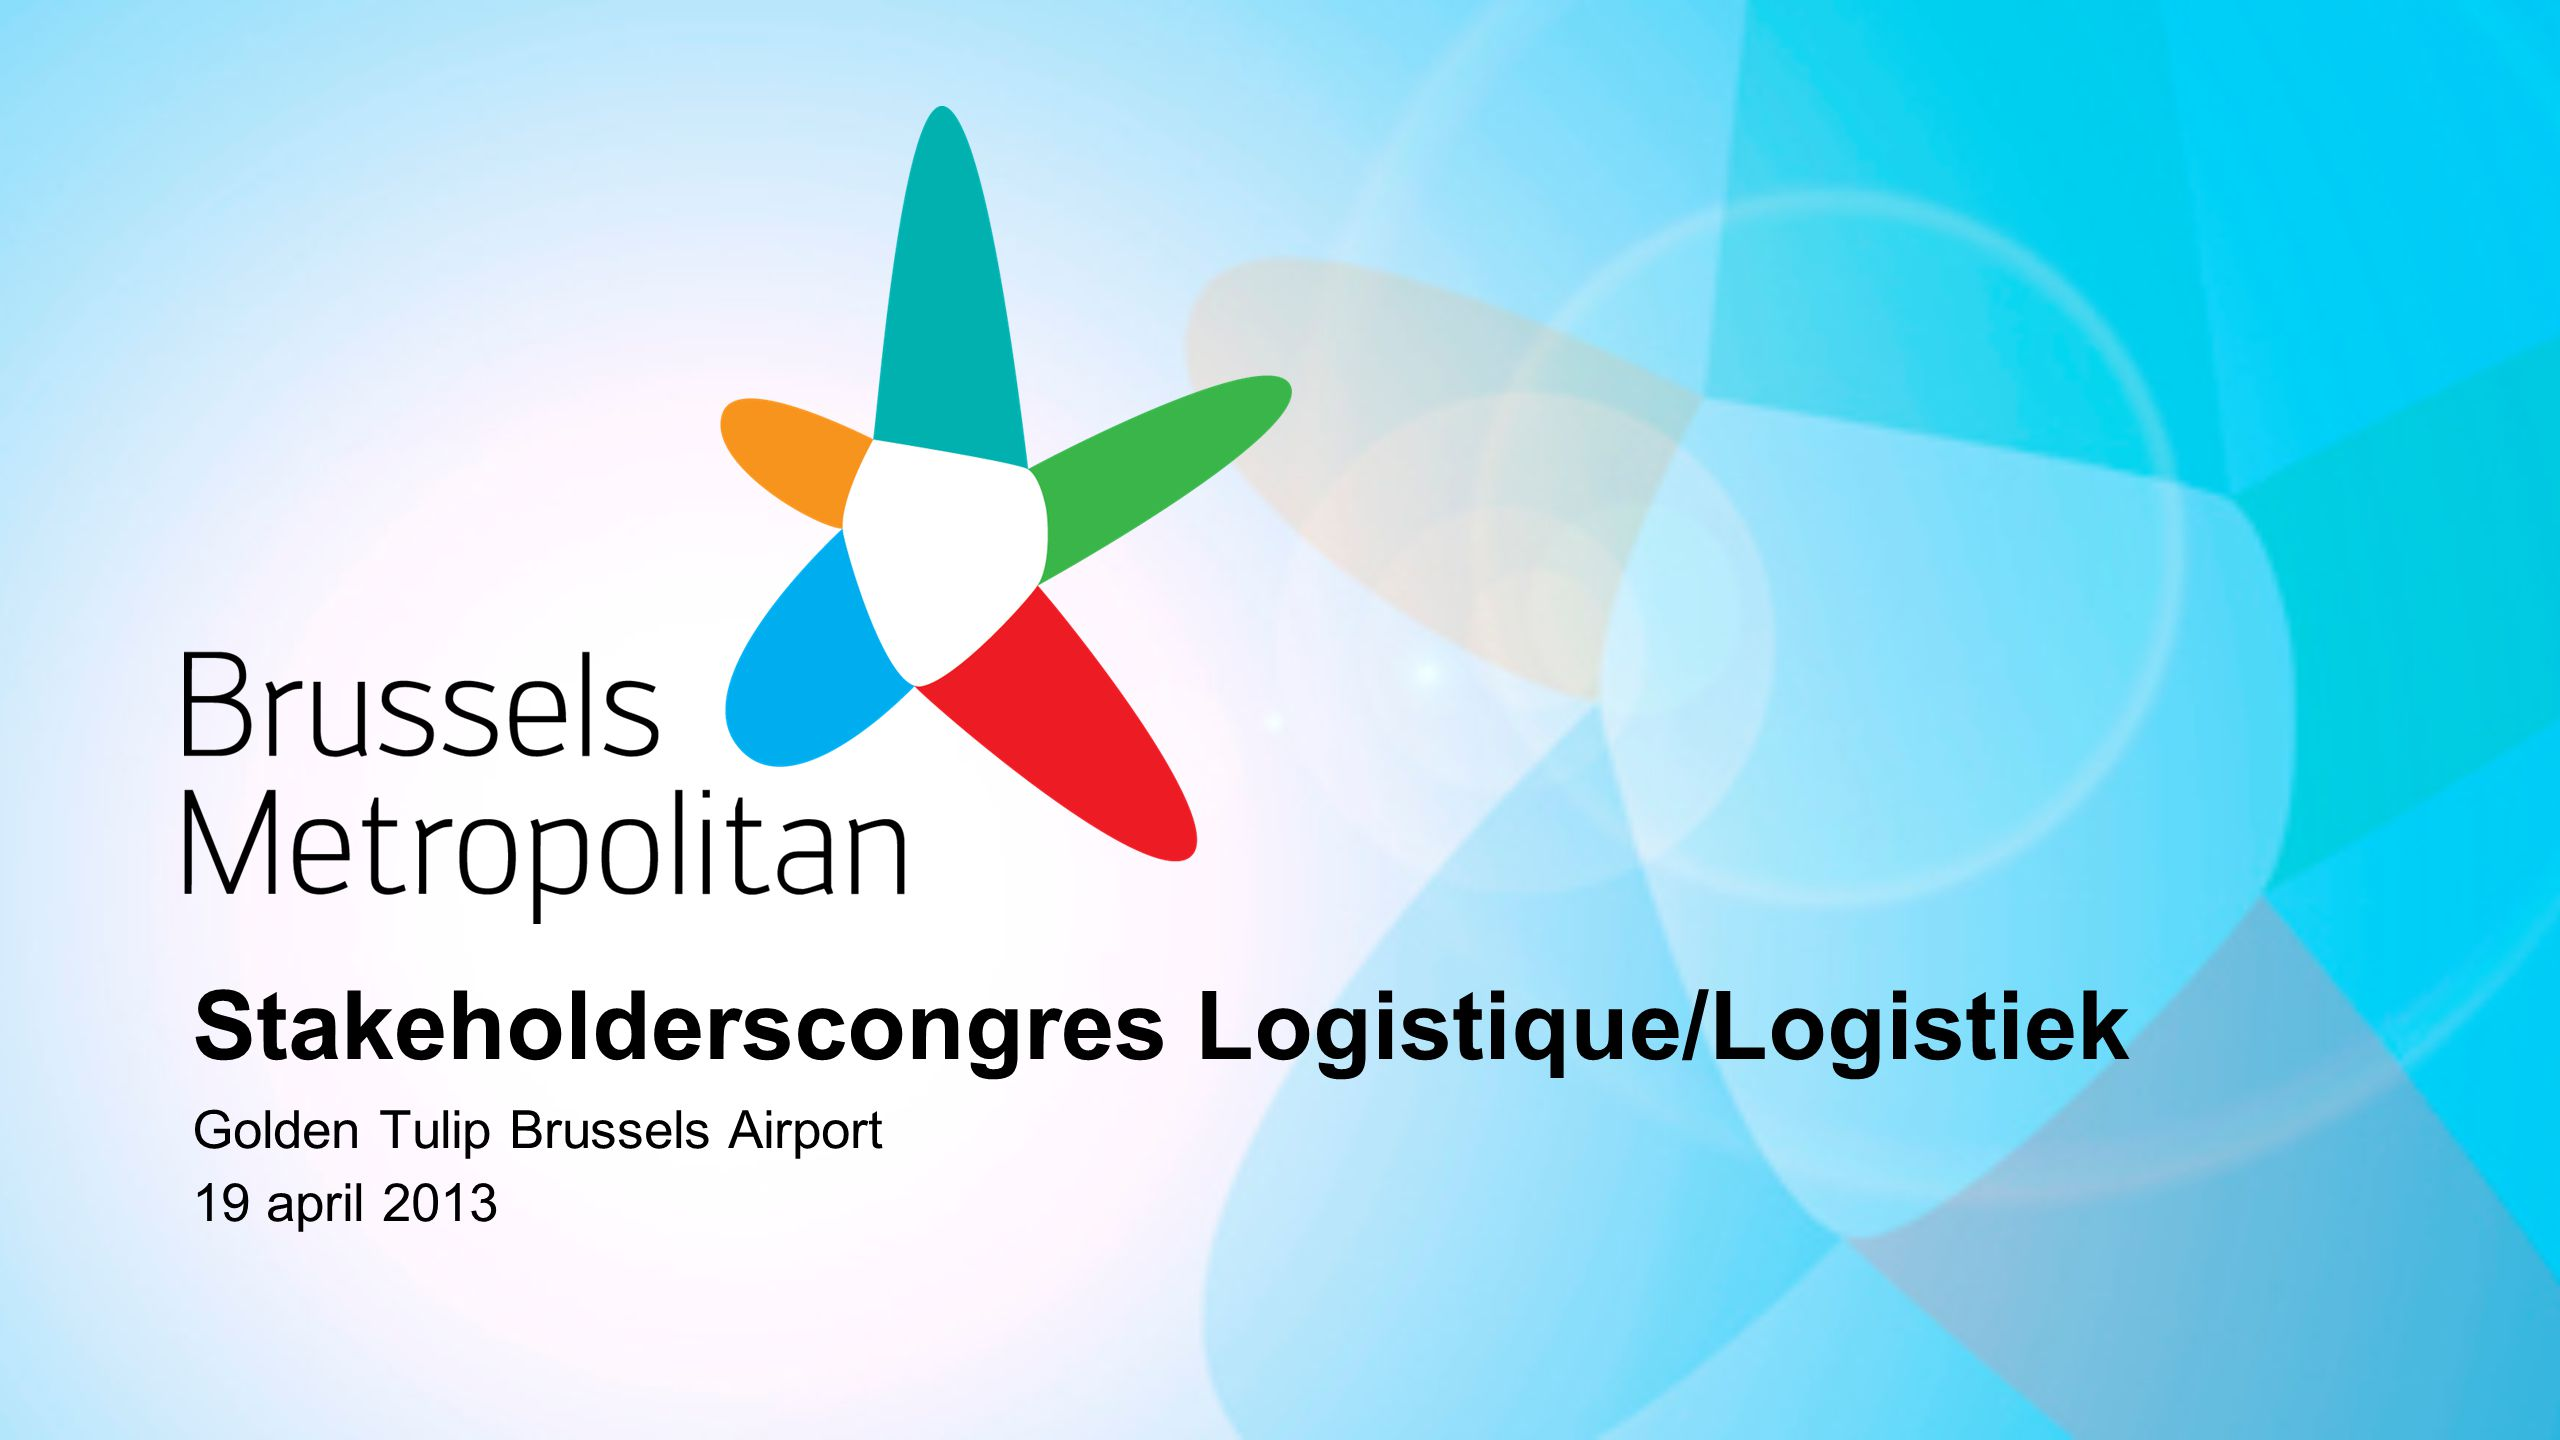 Stakeholderscongres Logistique/Logistiek Golden Tulip Brussels Airport 19 april 2013